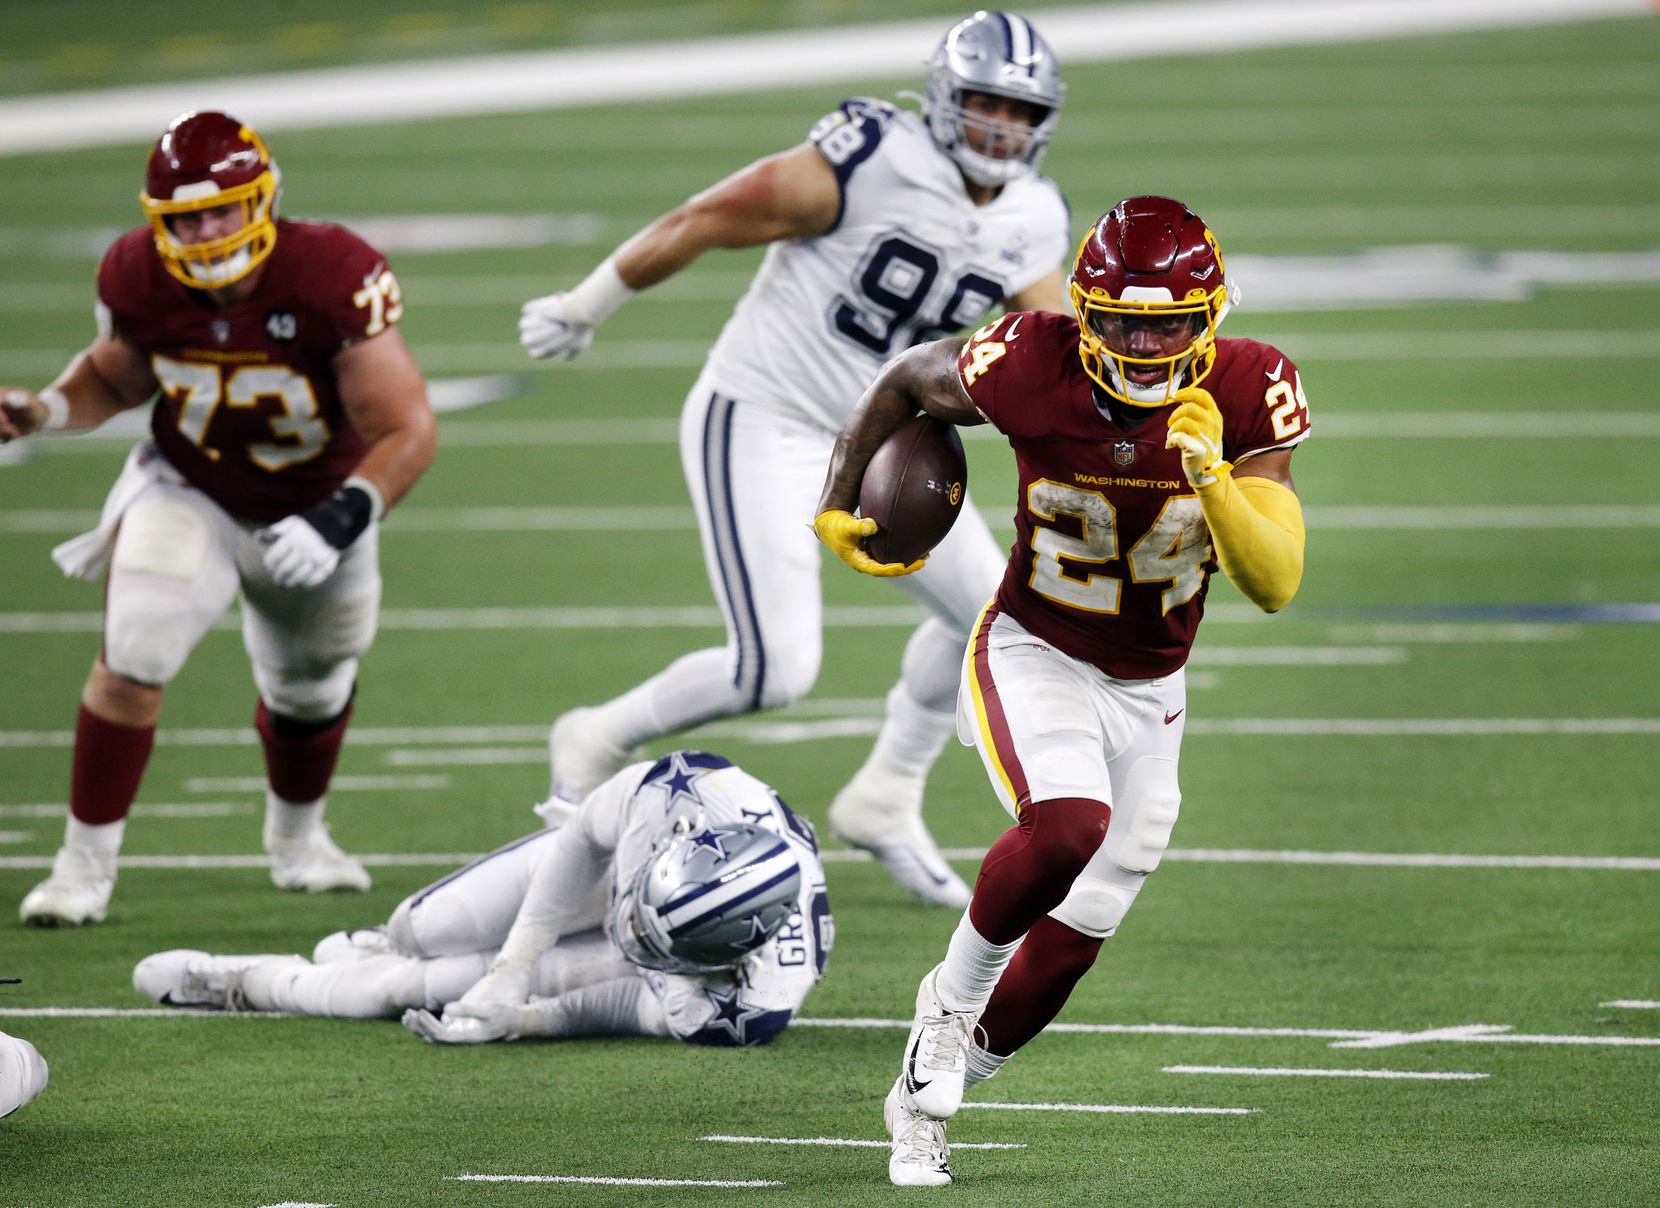 Washington Football Team running back Antonio Gibson (24)breaks way for an easy fourth quarter touchdown run at AT&T Stadium in Arlington, Thursday, November 26, 2020. The Cowboys lost, 41-16. (Tom Fox/The Dallas Morning News)